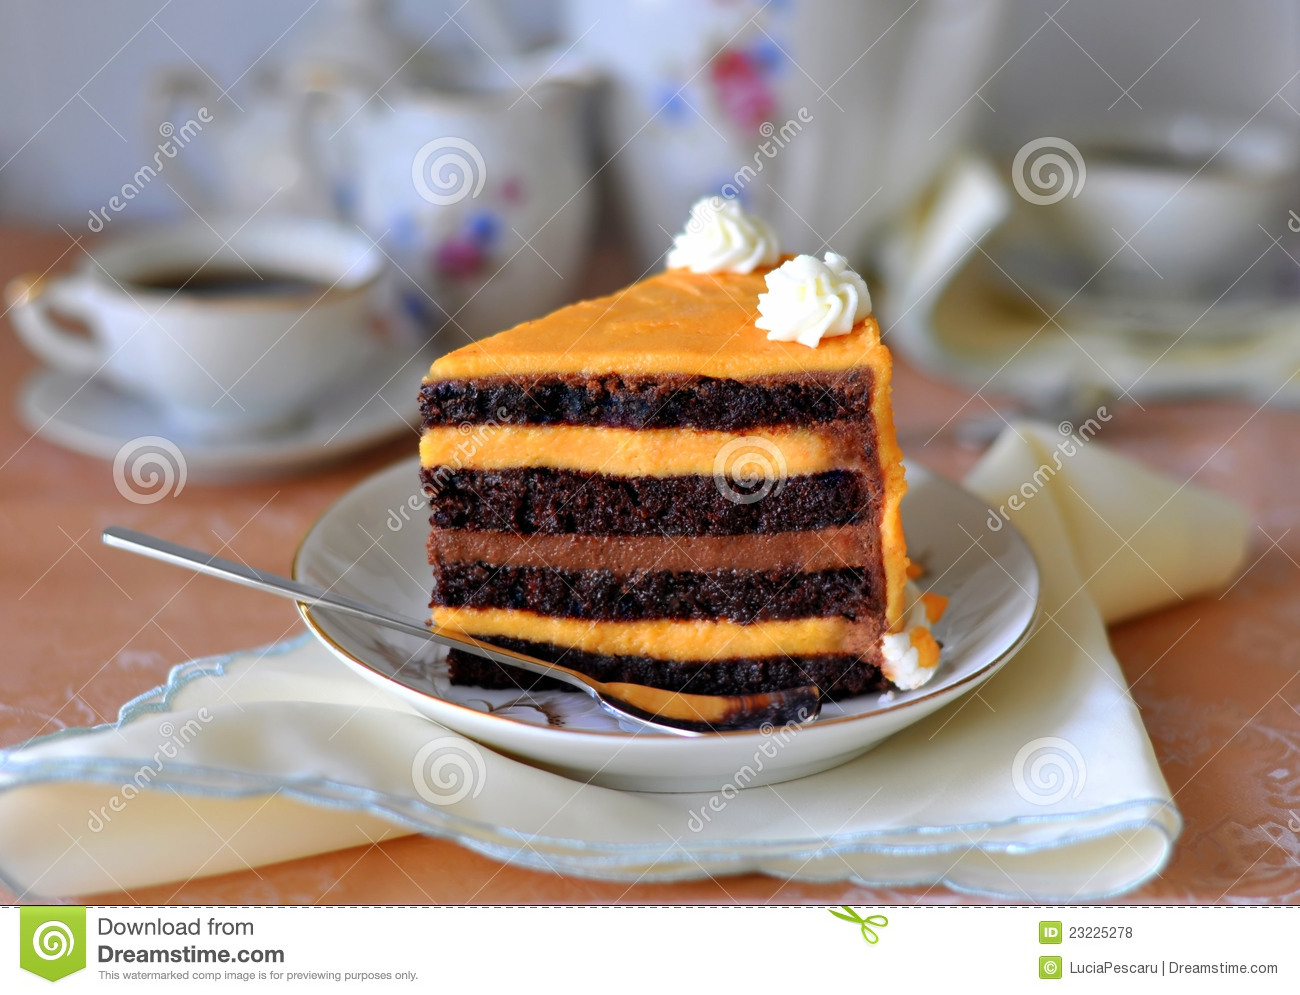 Fancy Chocolate Cake Images : Fancy Chocolate & Orange Cake Royalty Free Stock Photos ...